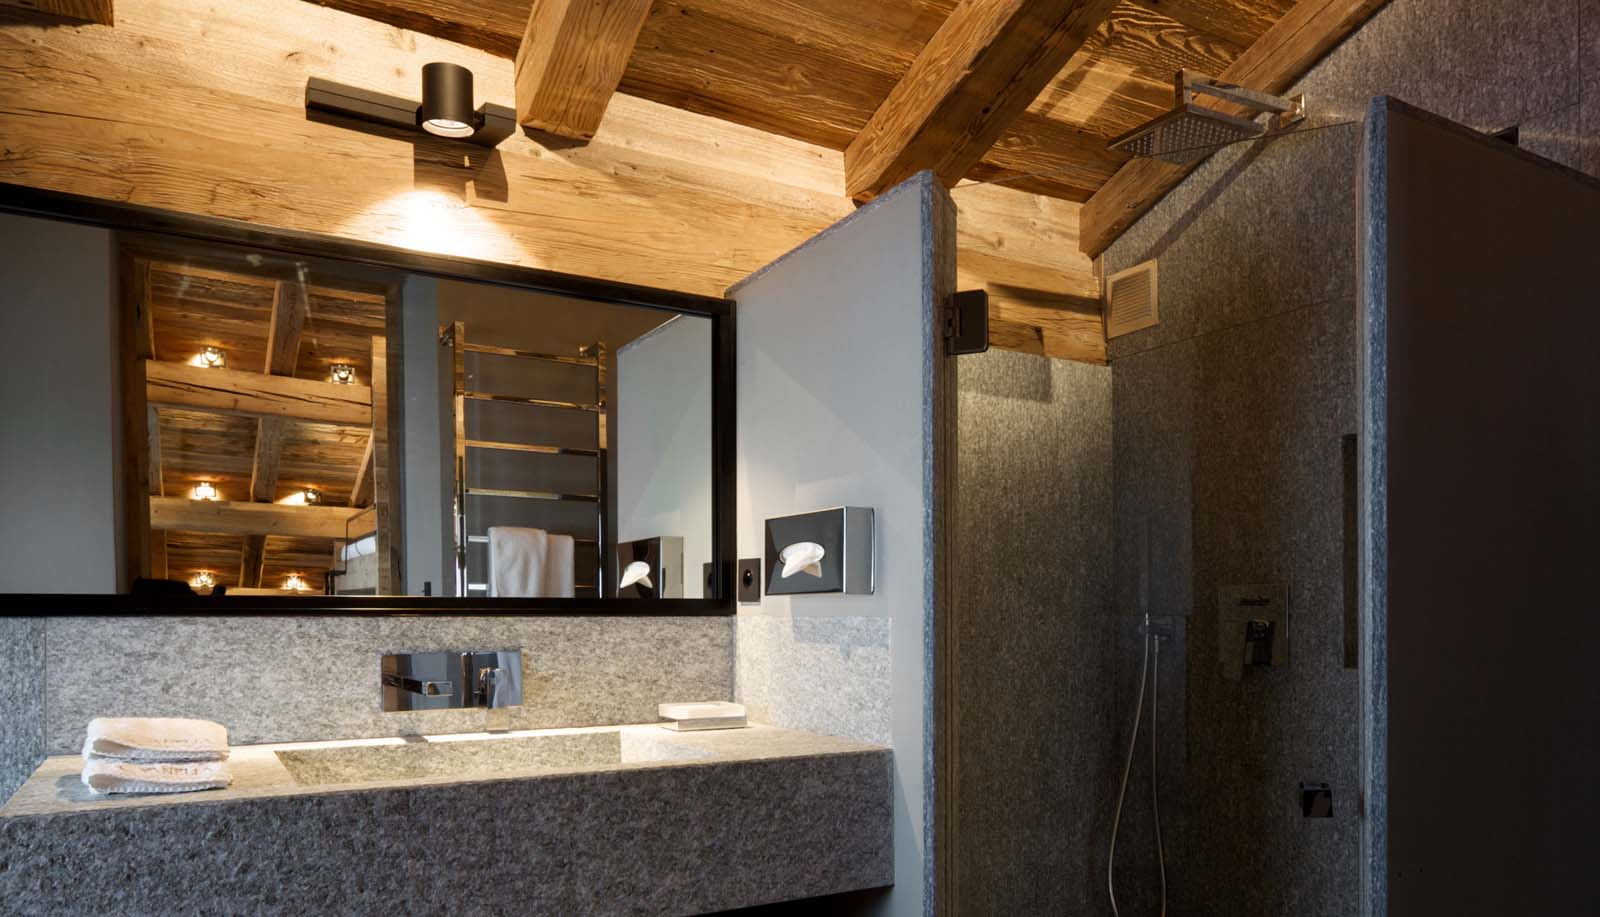 Chalet jaguar in megeve by skiboutique for Salle de bain chalet